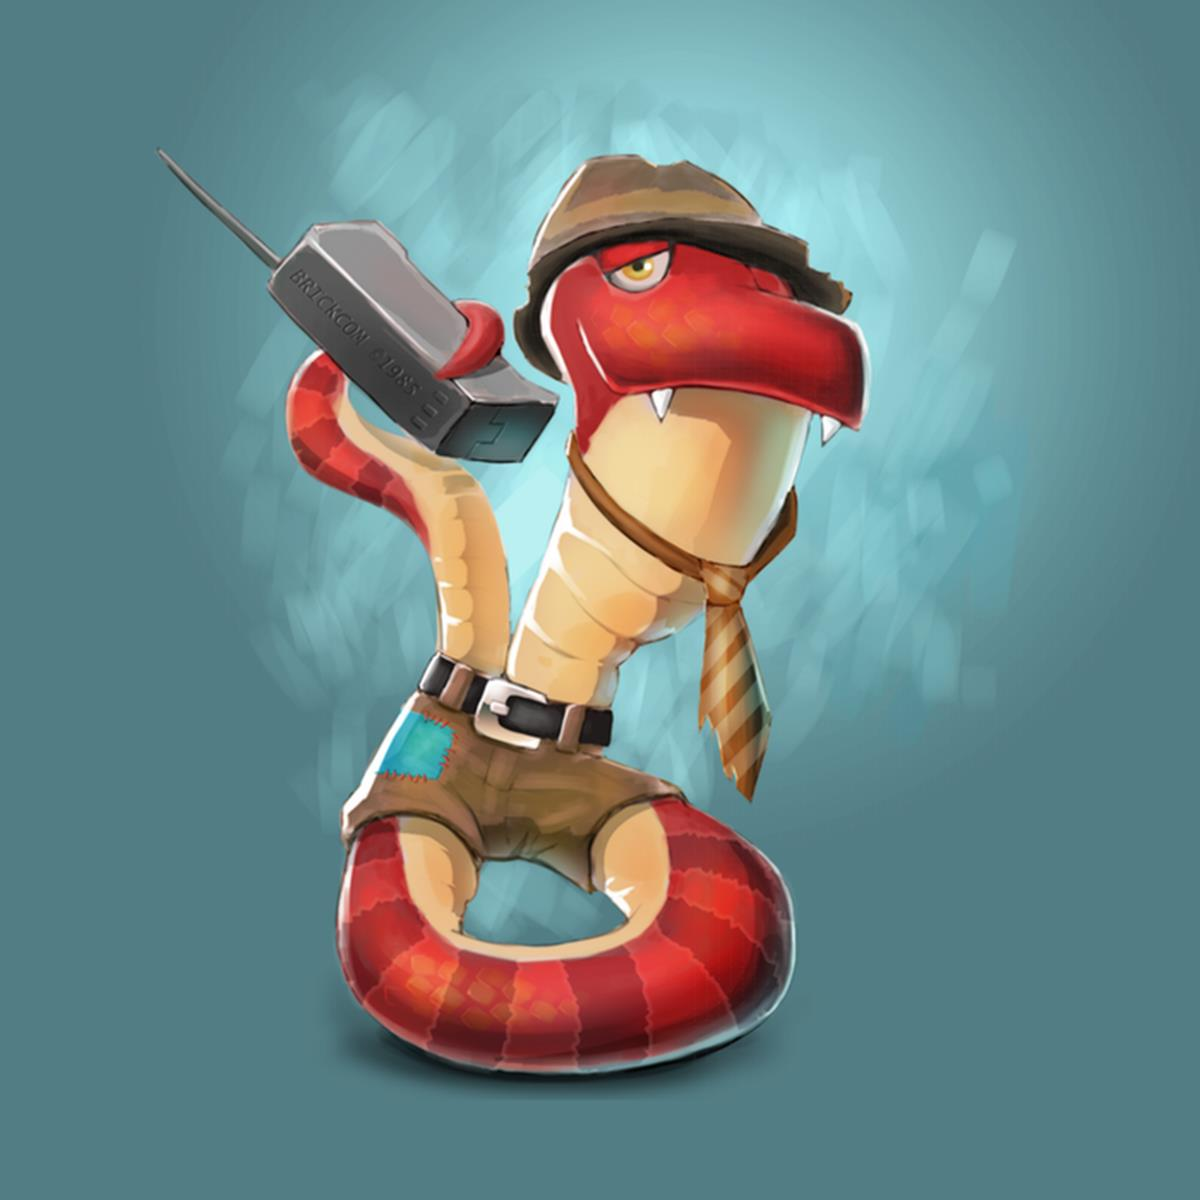 Banjo-Kazooie successor gets new character that is a snake ...